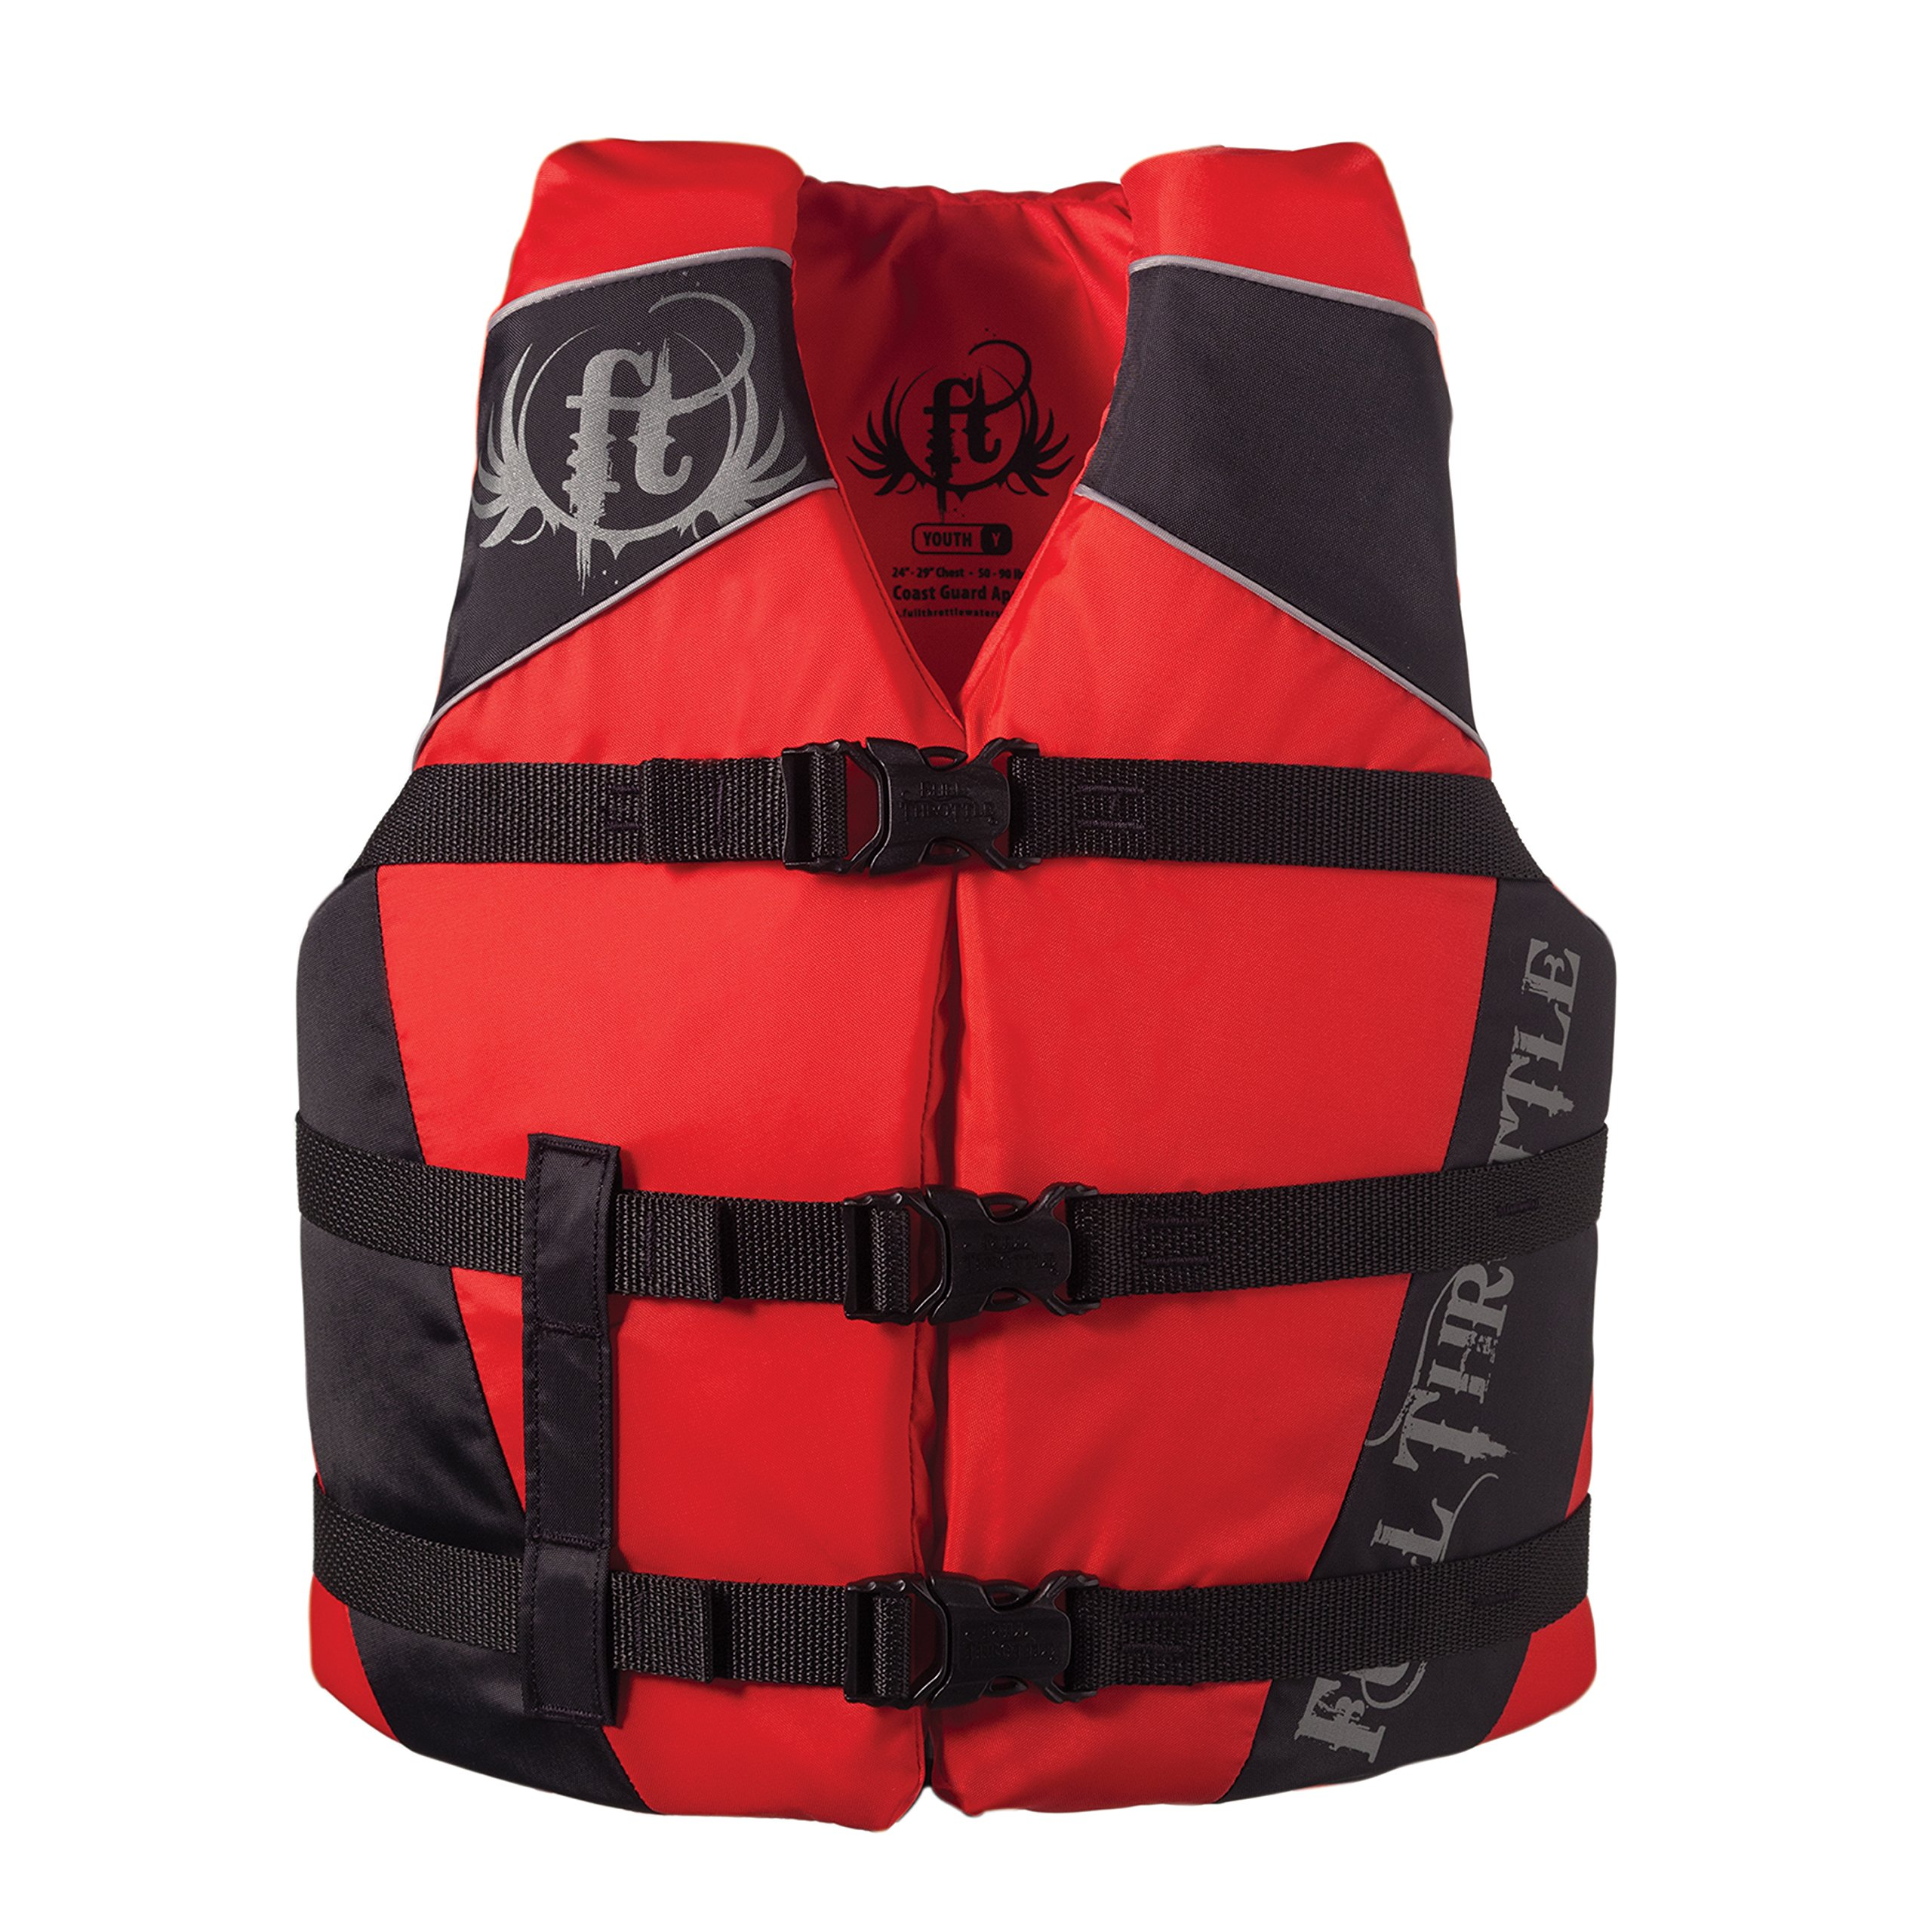 Full Throttle Youth Nylon Watersports Vest - Red/Black